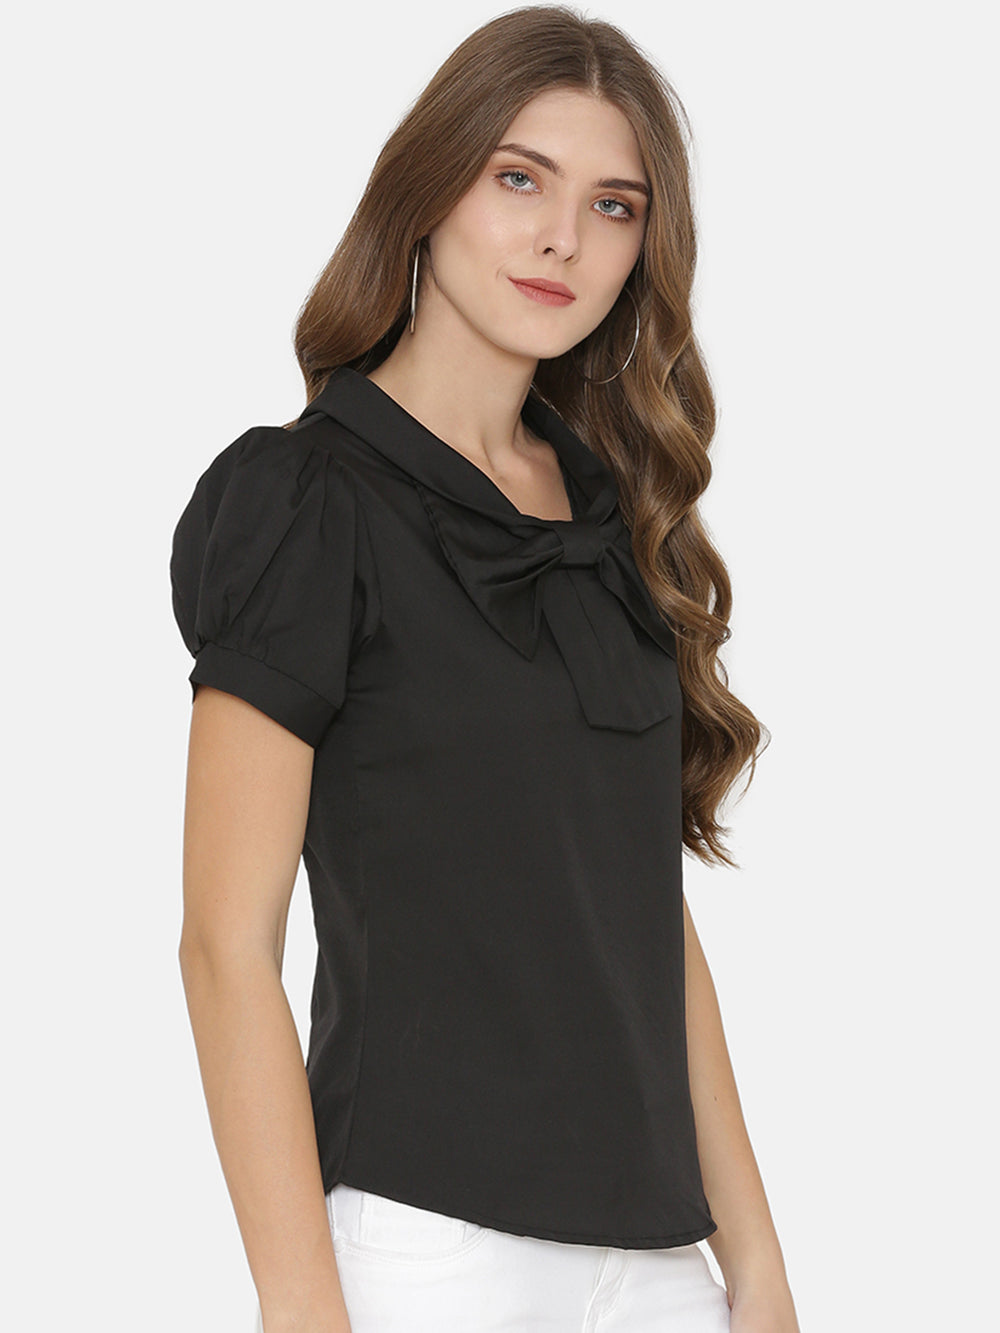 eyelet Women Black Solid Top